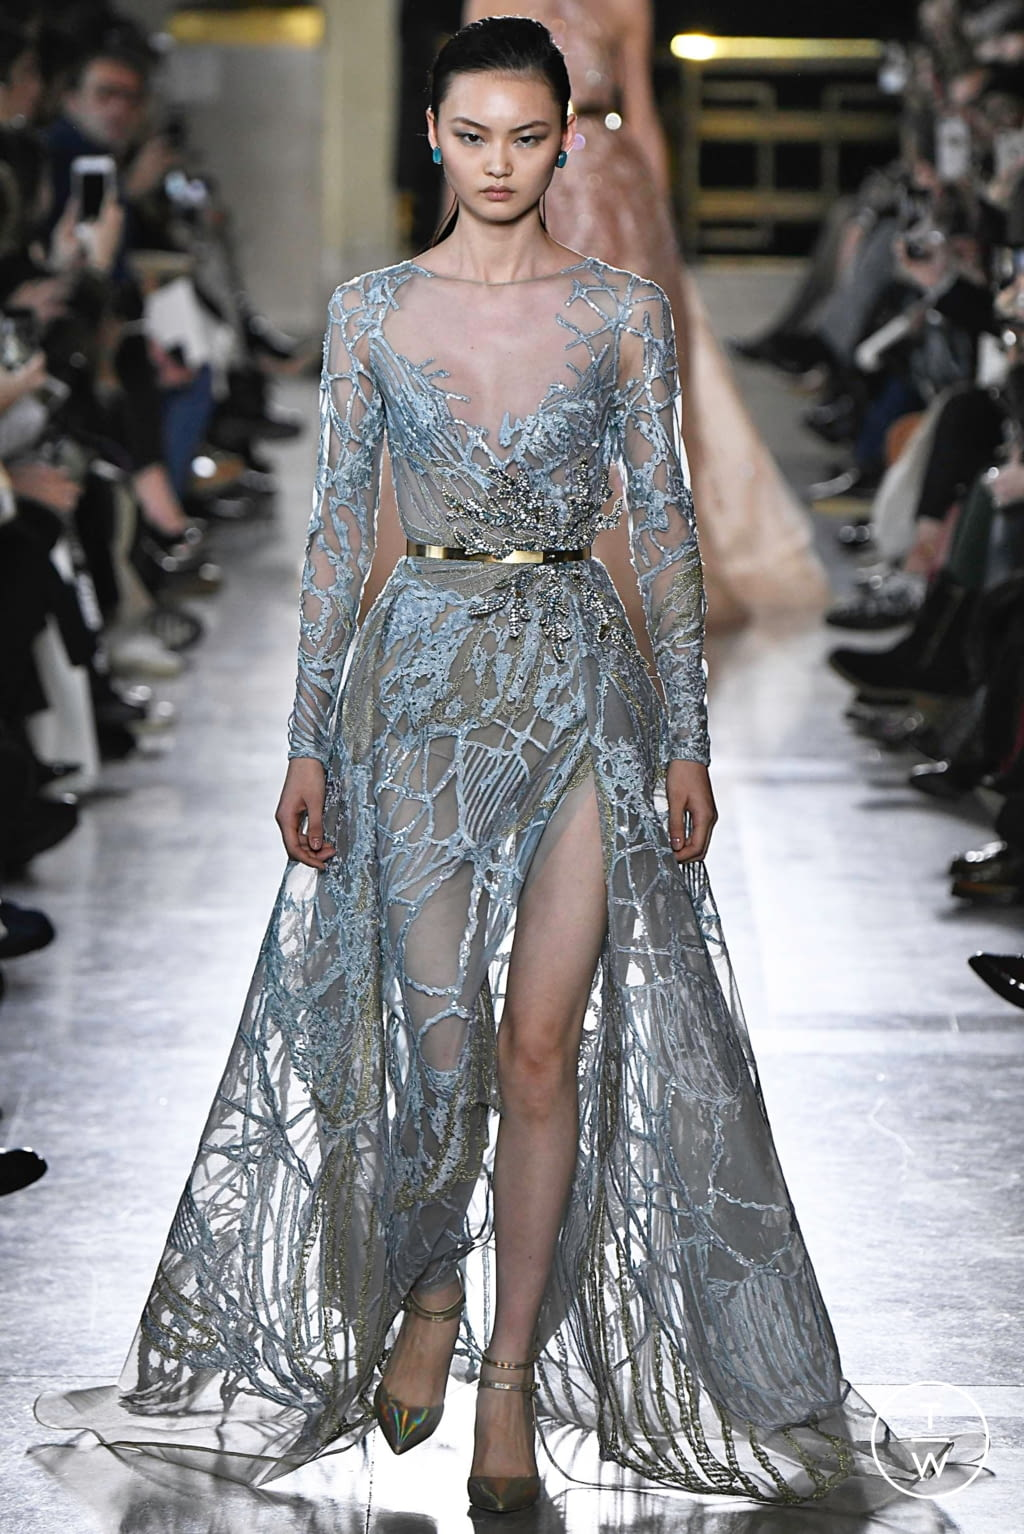 Fashion Week Paris Spring/Summer 2019 look 11 from the Elie Saab collection 高级定制